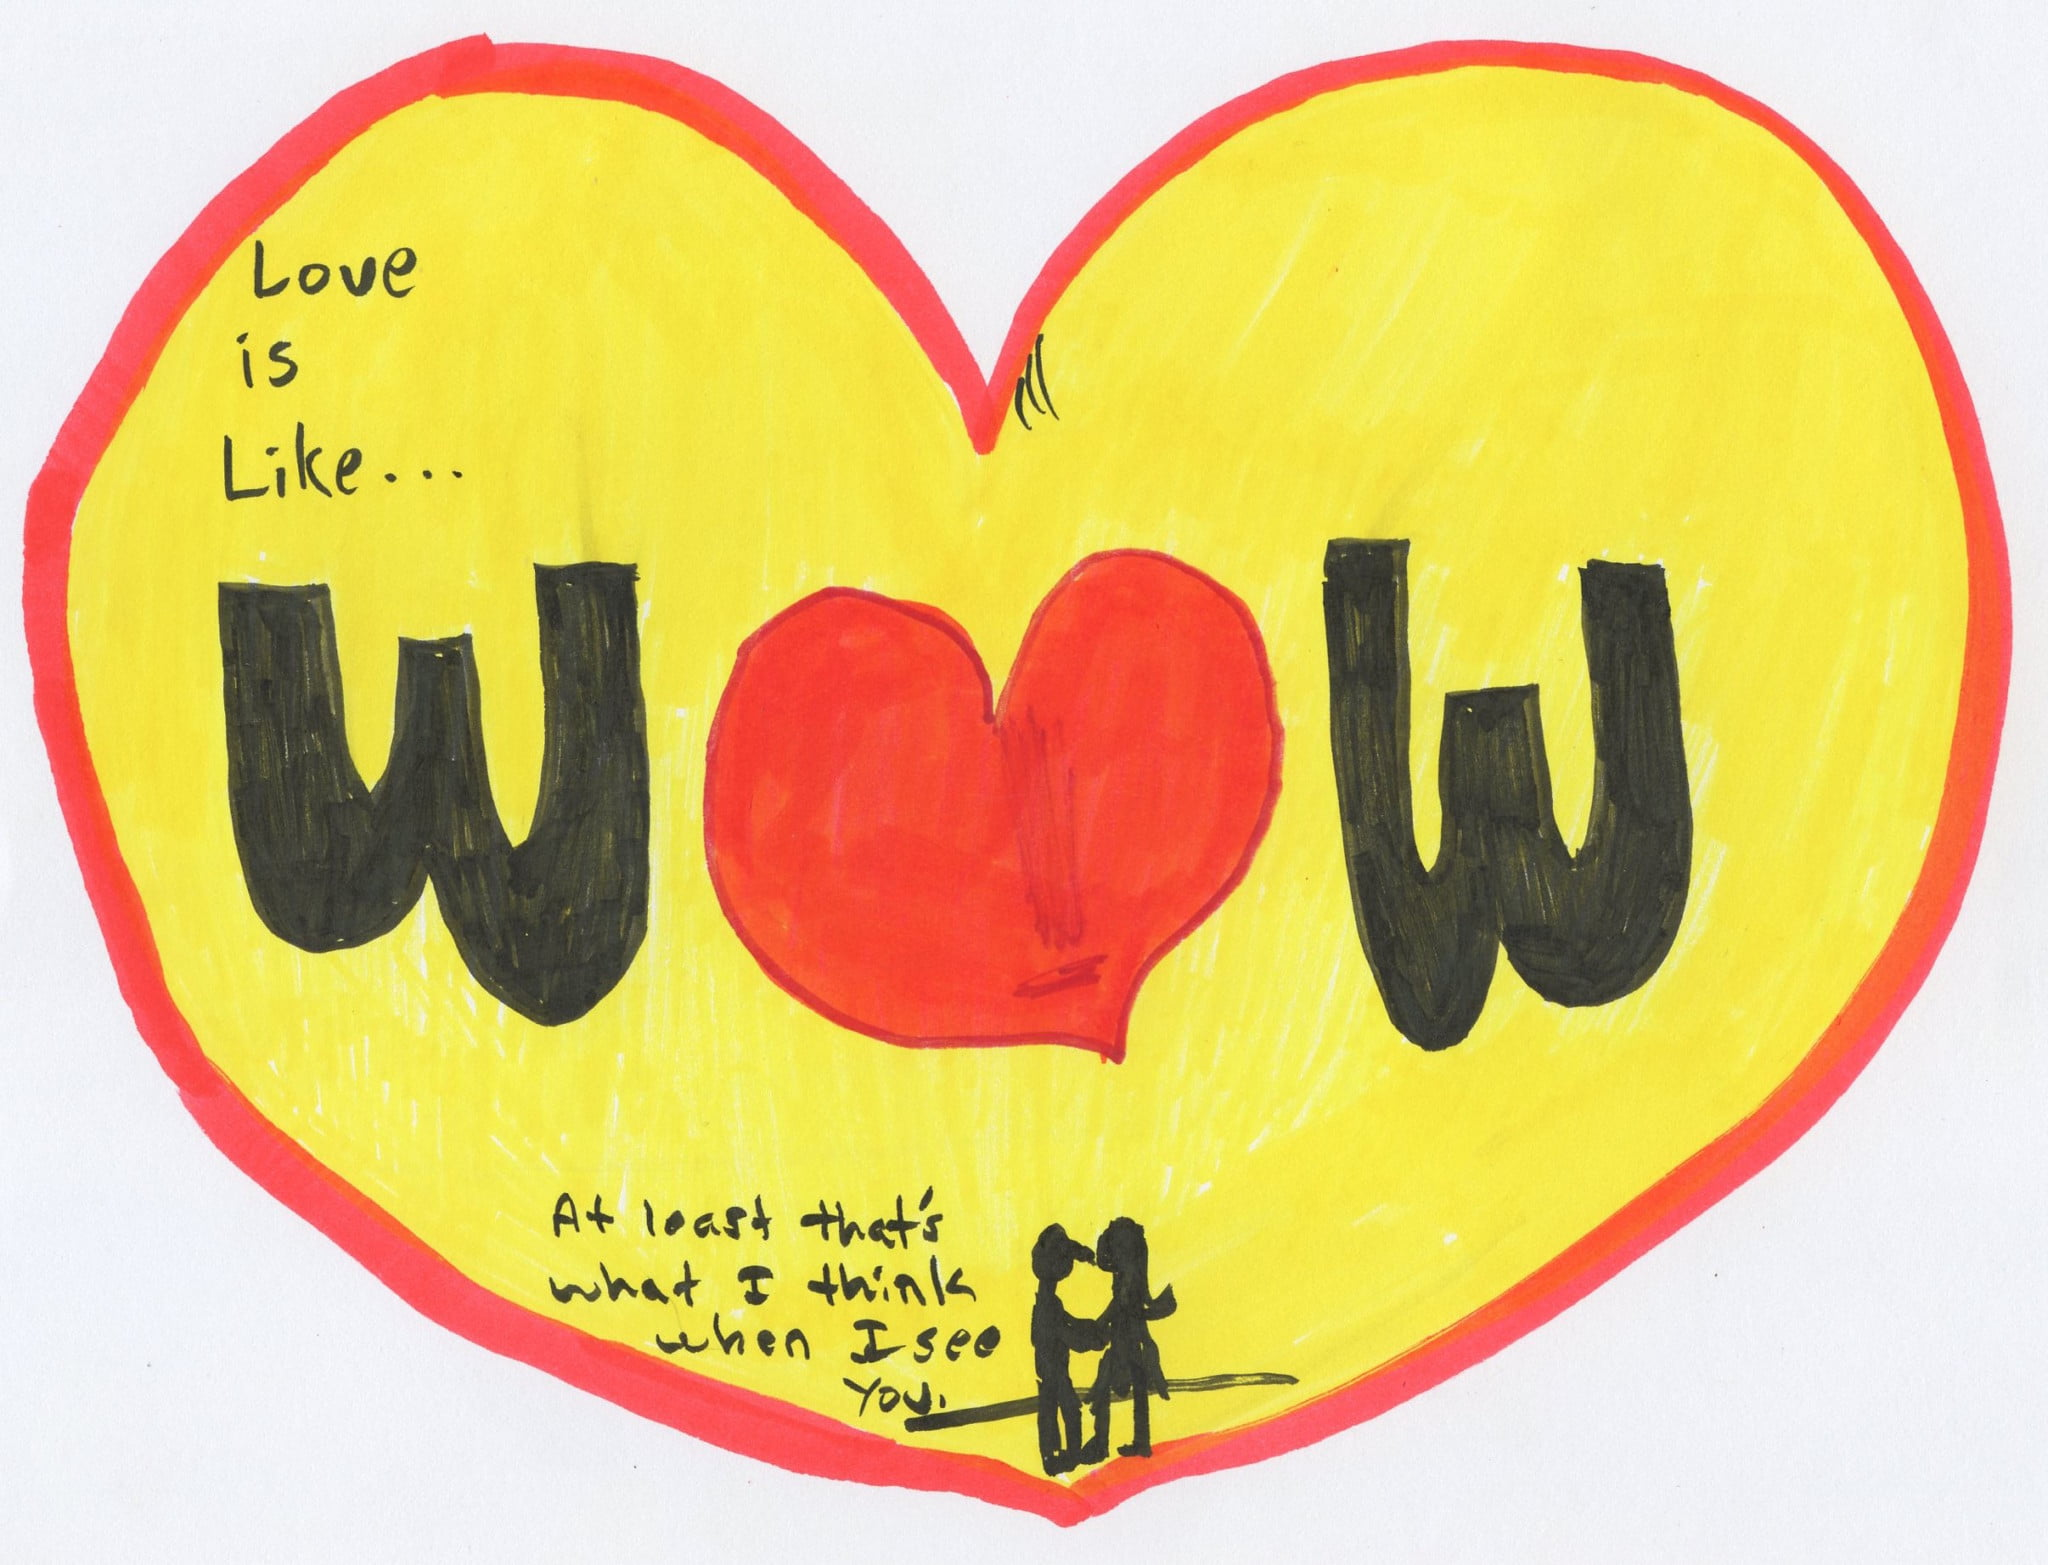 Love is like... Wow at least that is what I think when I see you.